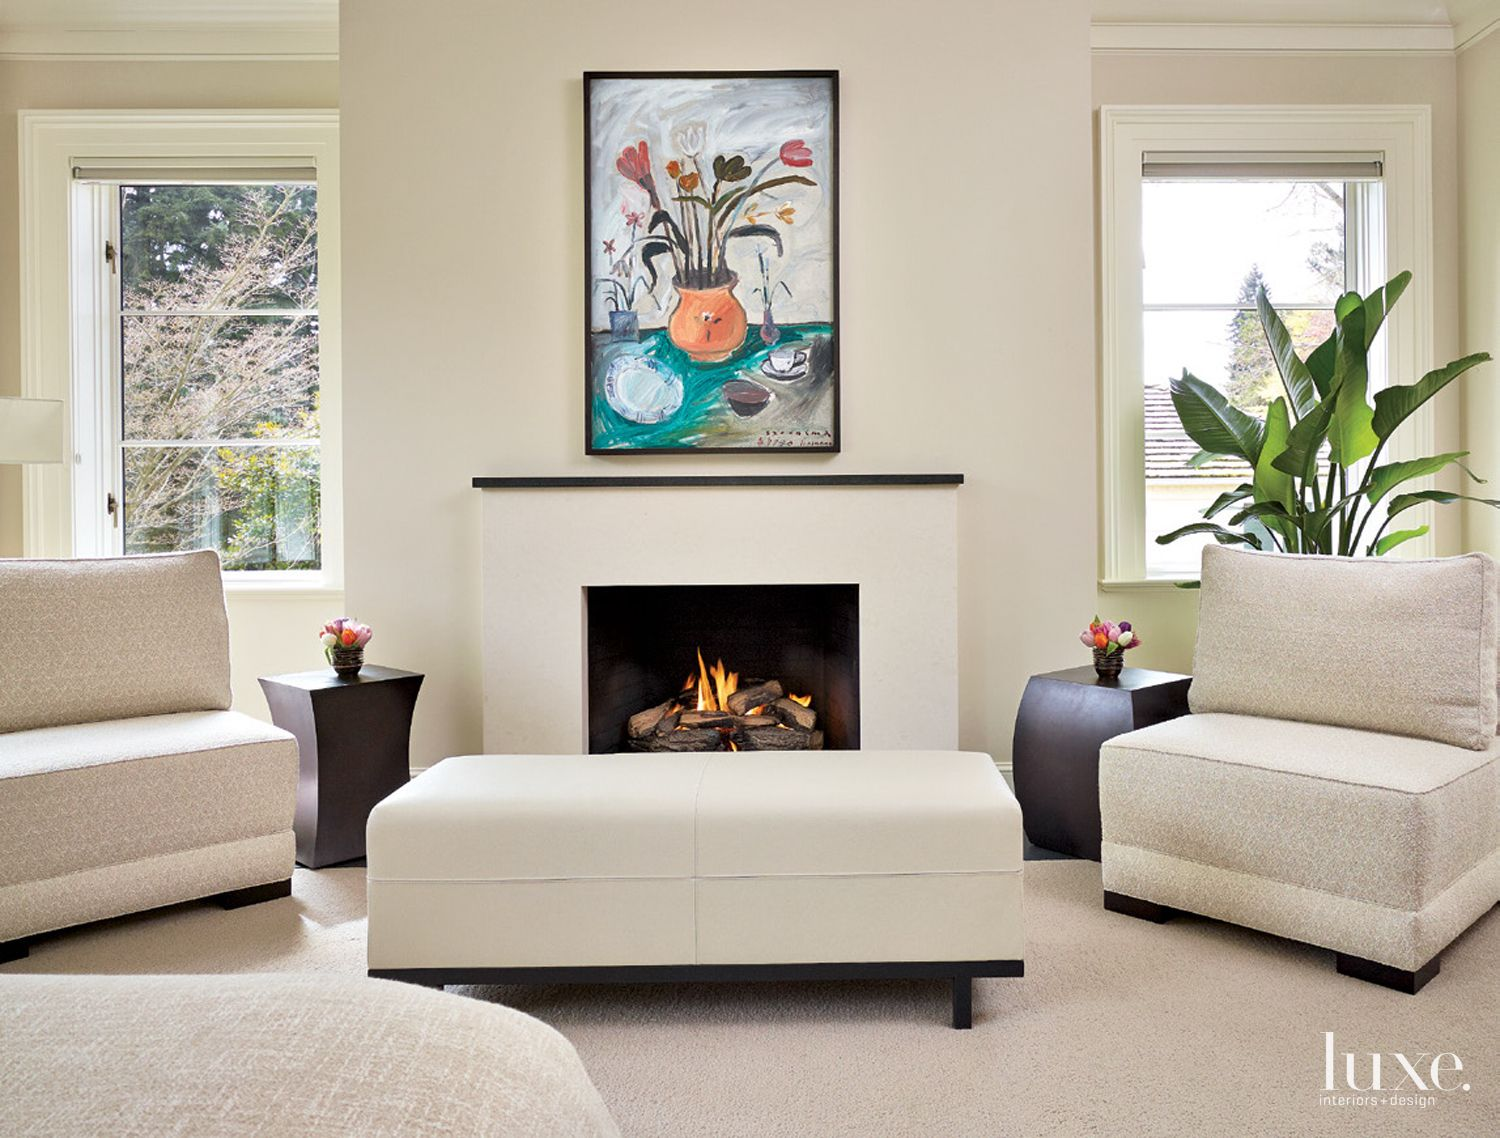 Contemporary White Bedroom Sitting Area with Fireplace